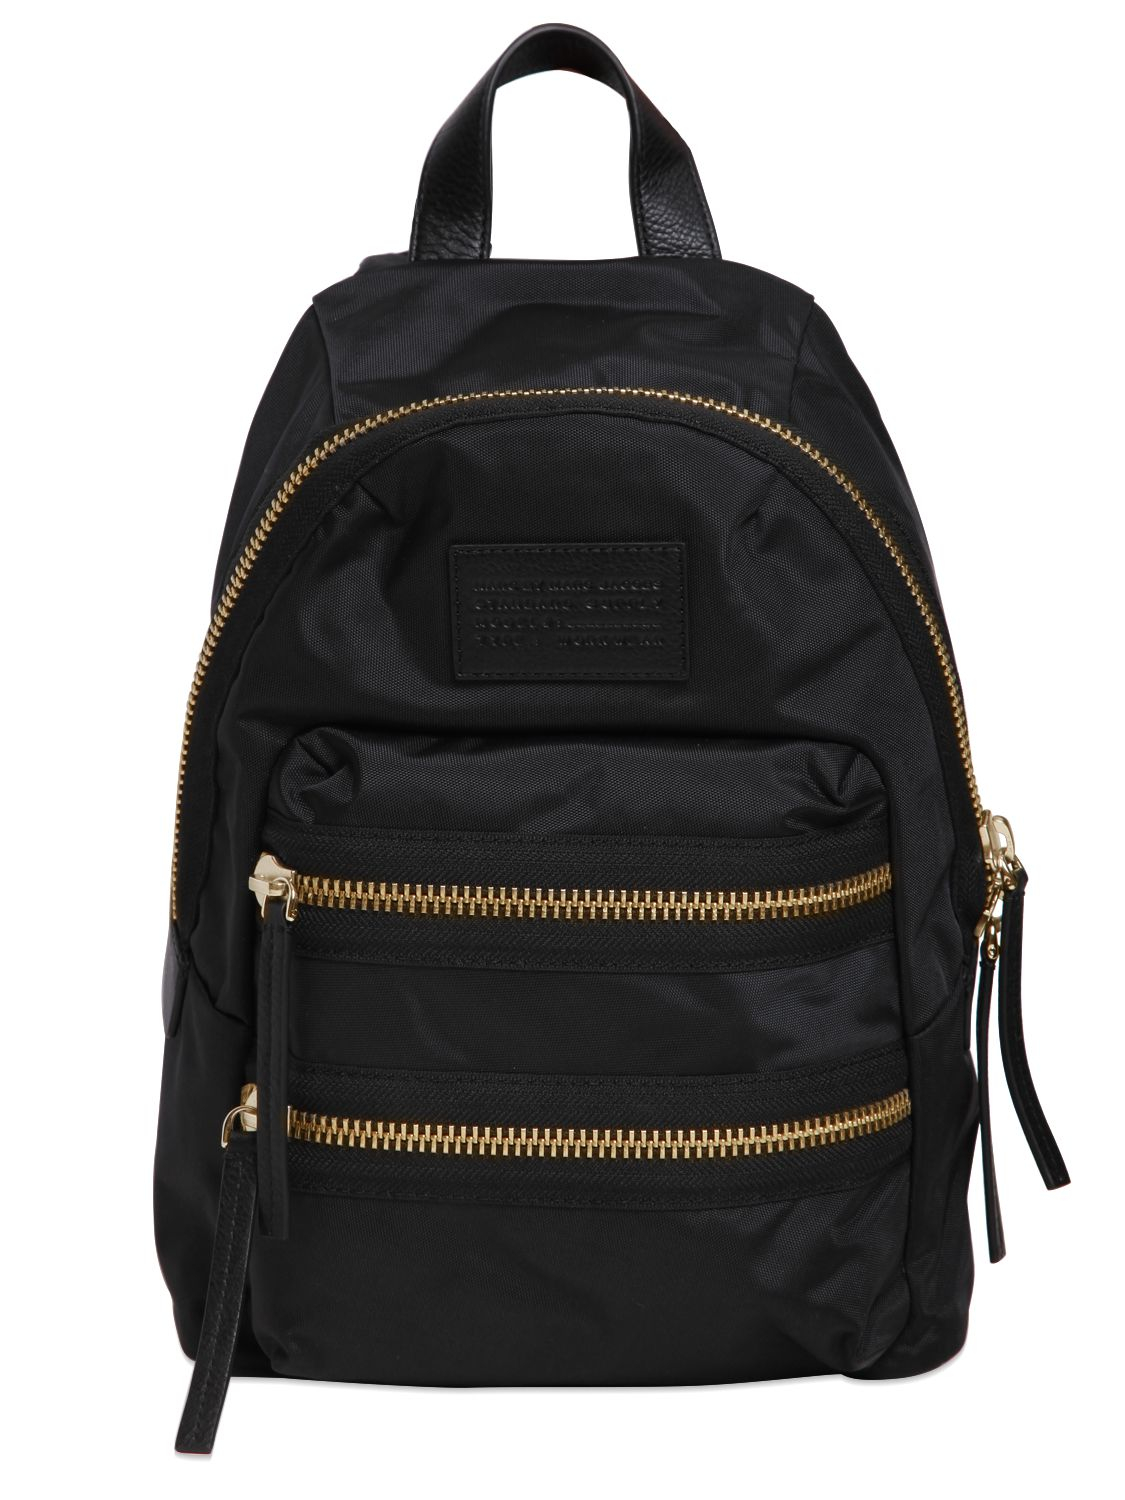 marc by marc jacobs mini packrat nylon backpack in black. Black Bedroom Furniture Sets. Home Design Ideas